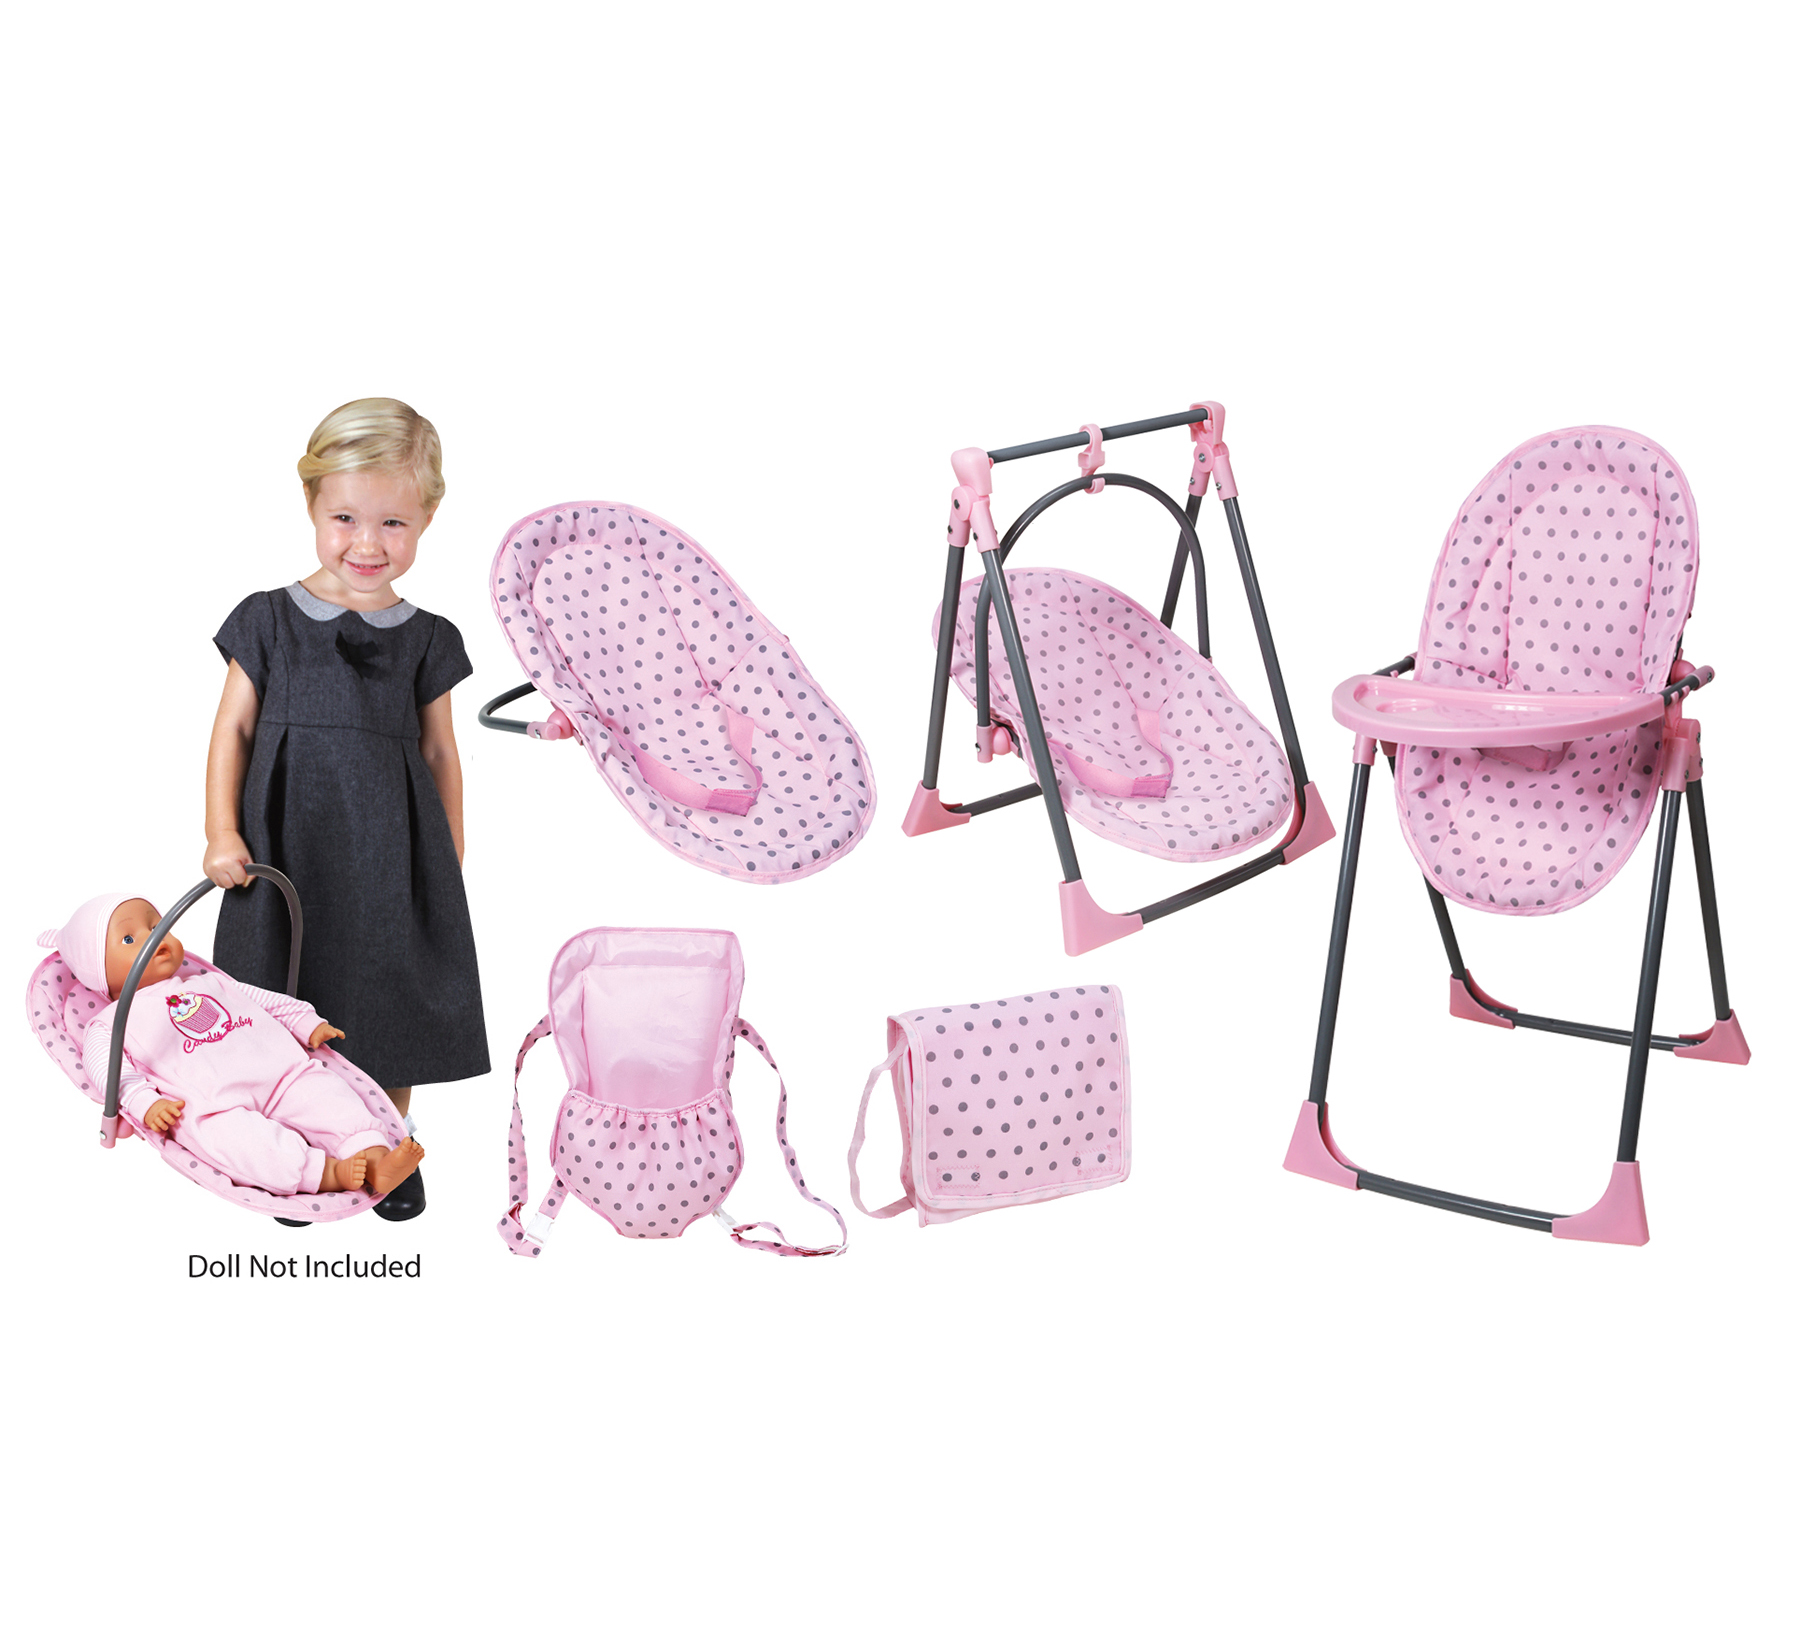 Lissi Baby Doll 6 In 1 Convertible Highchair Play Set Walmart